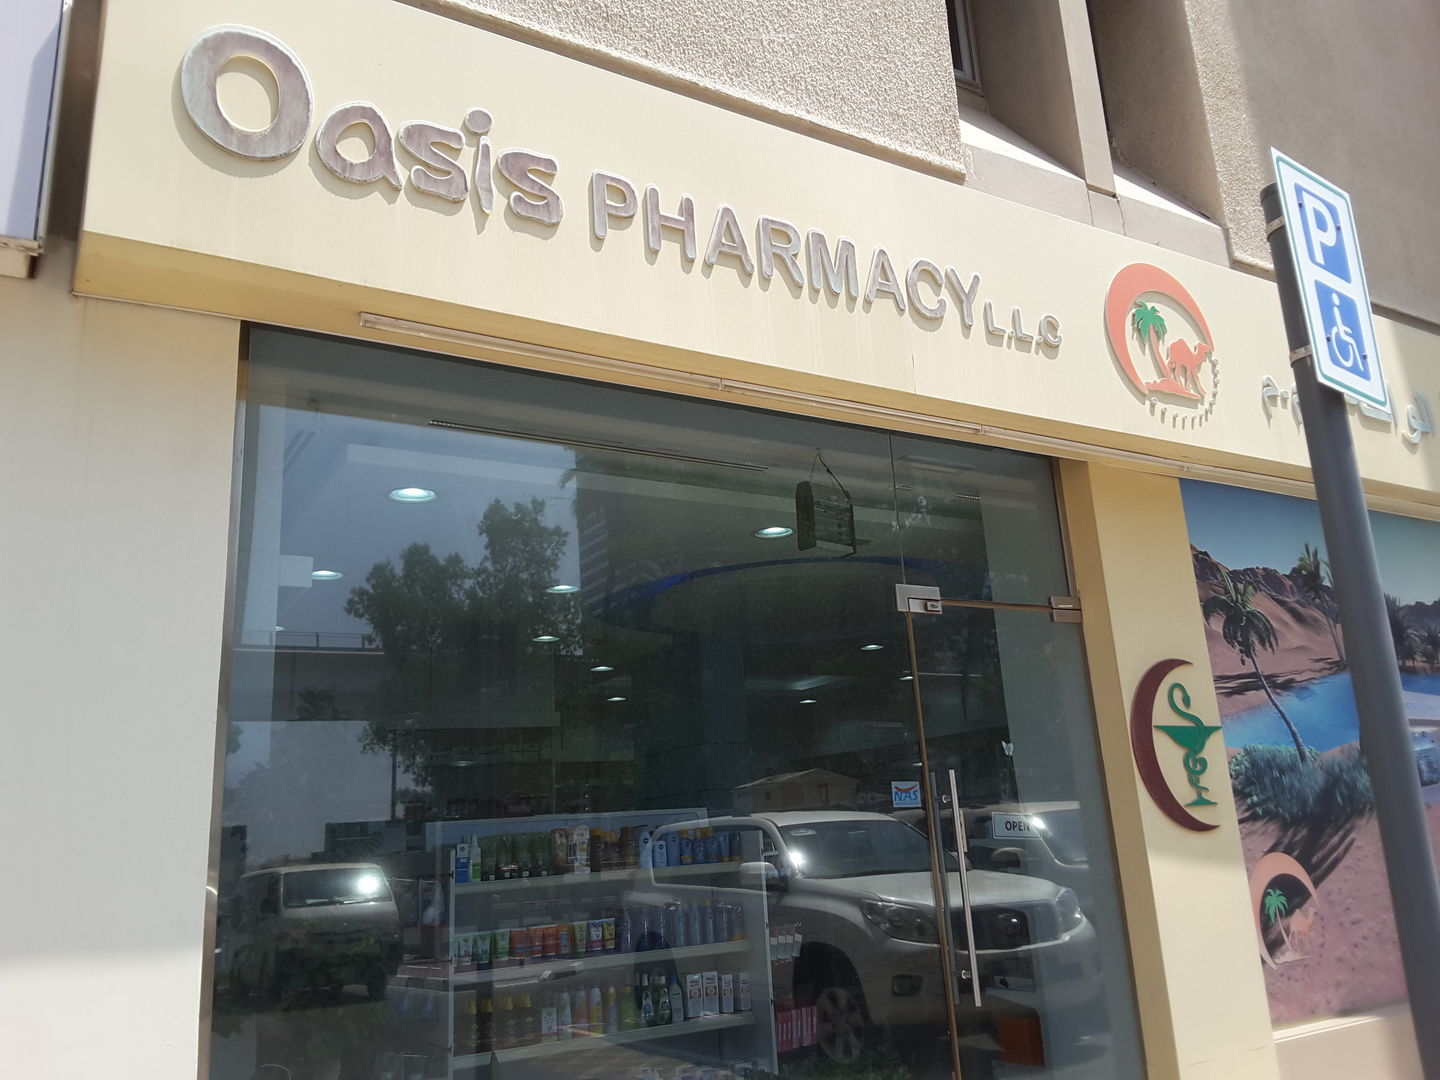 HiDubai-business-oasis-pharmacy-beauty-wellness-health-pharmacy-dubai-world-trade-centre-trade-centre-2-dubai-2